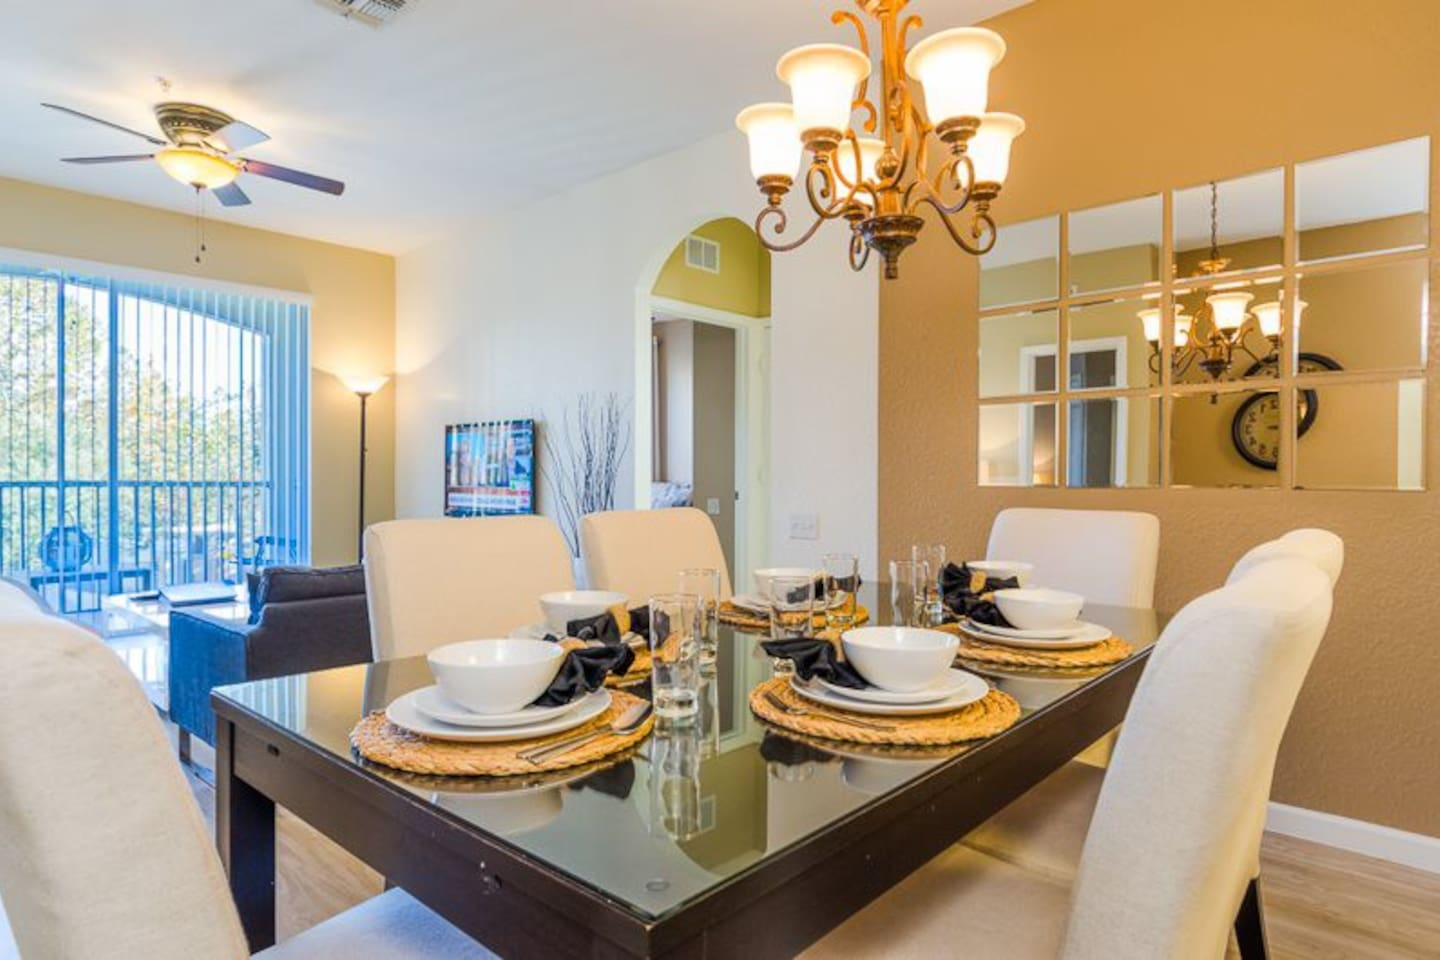 Formal dining (6 ) for your family meals.